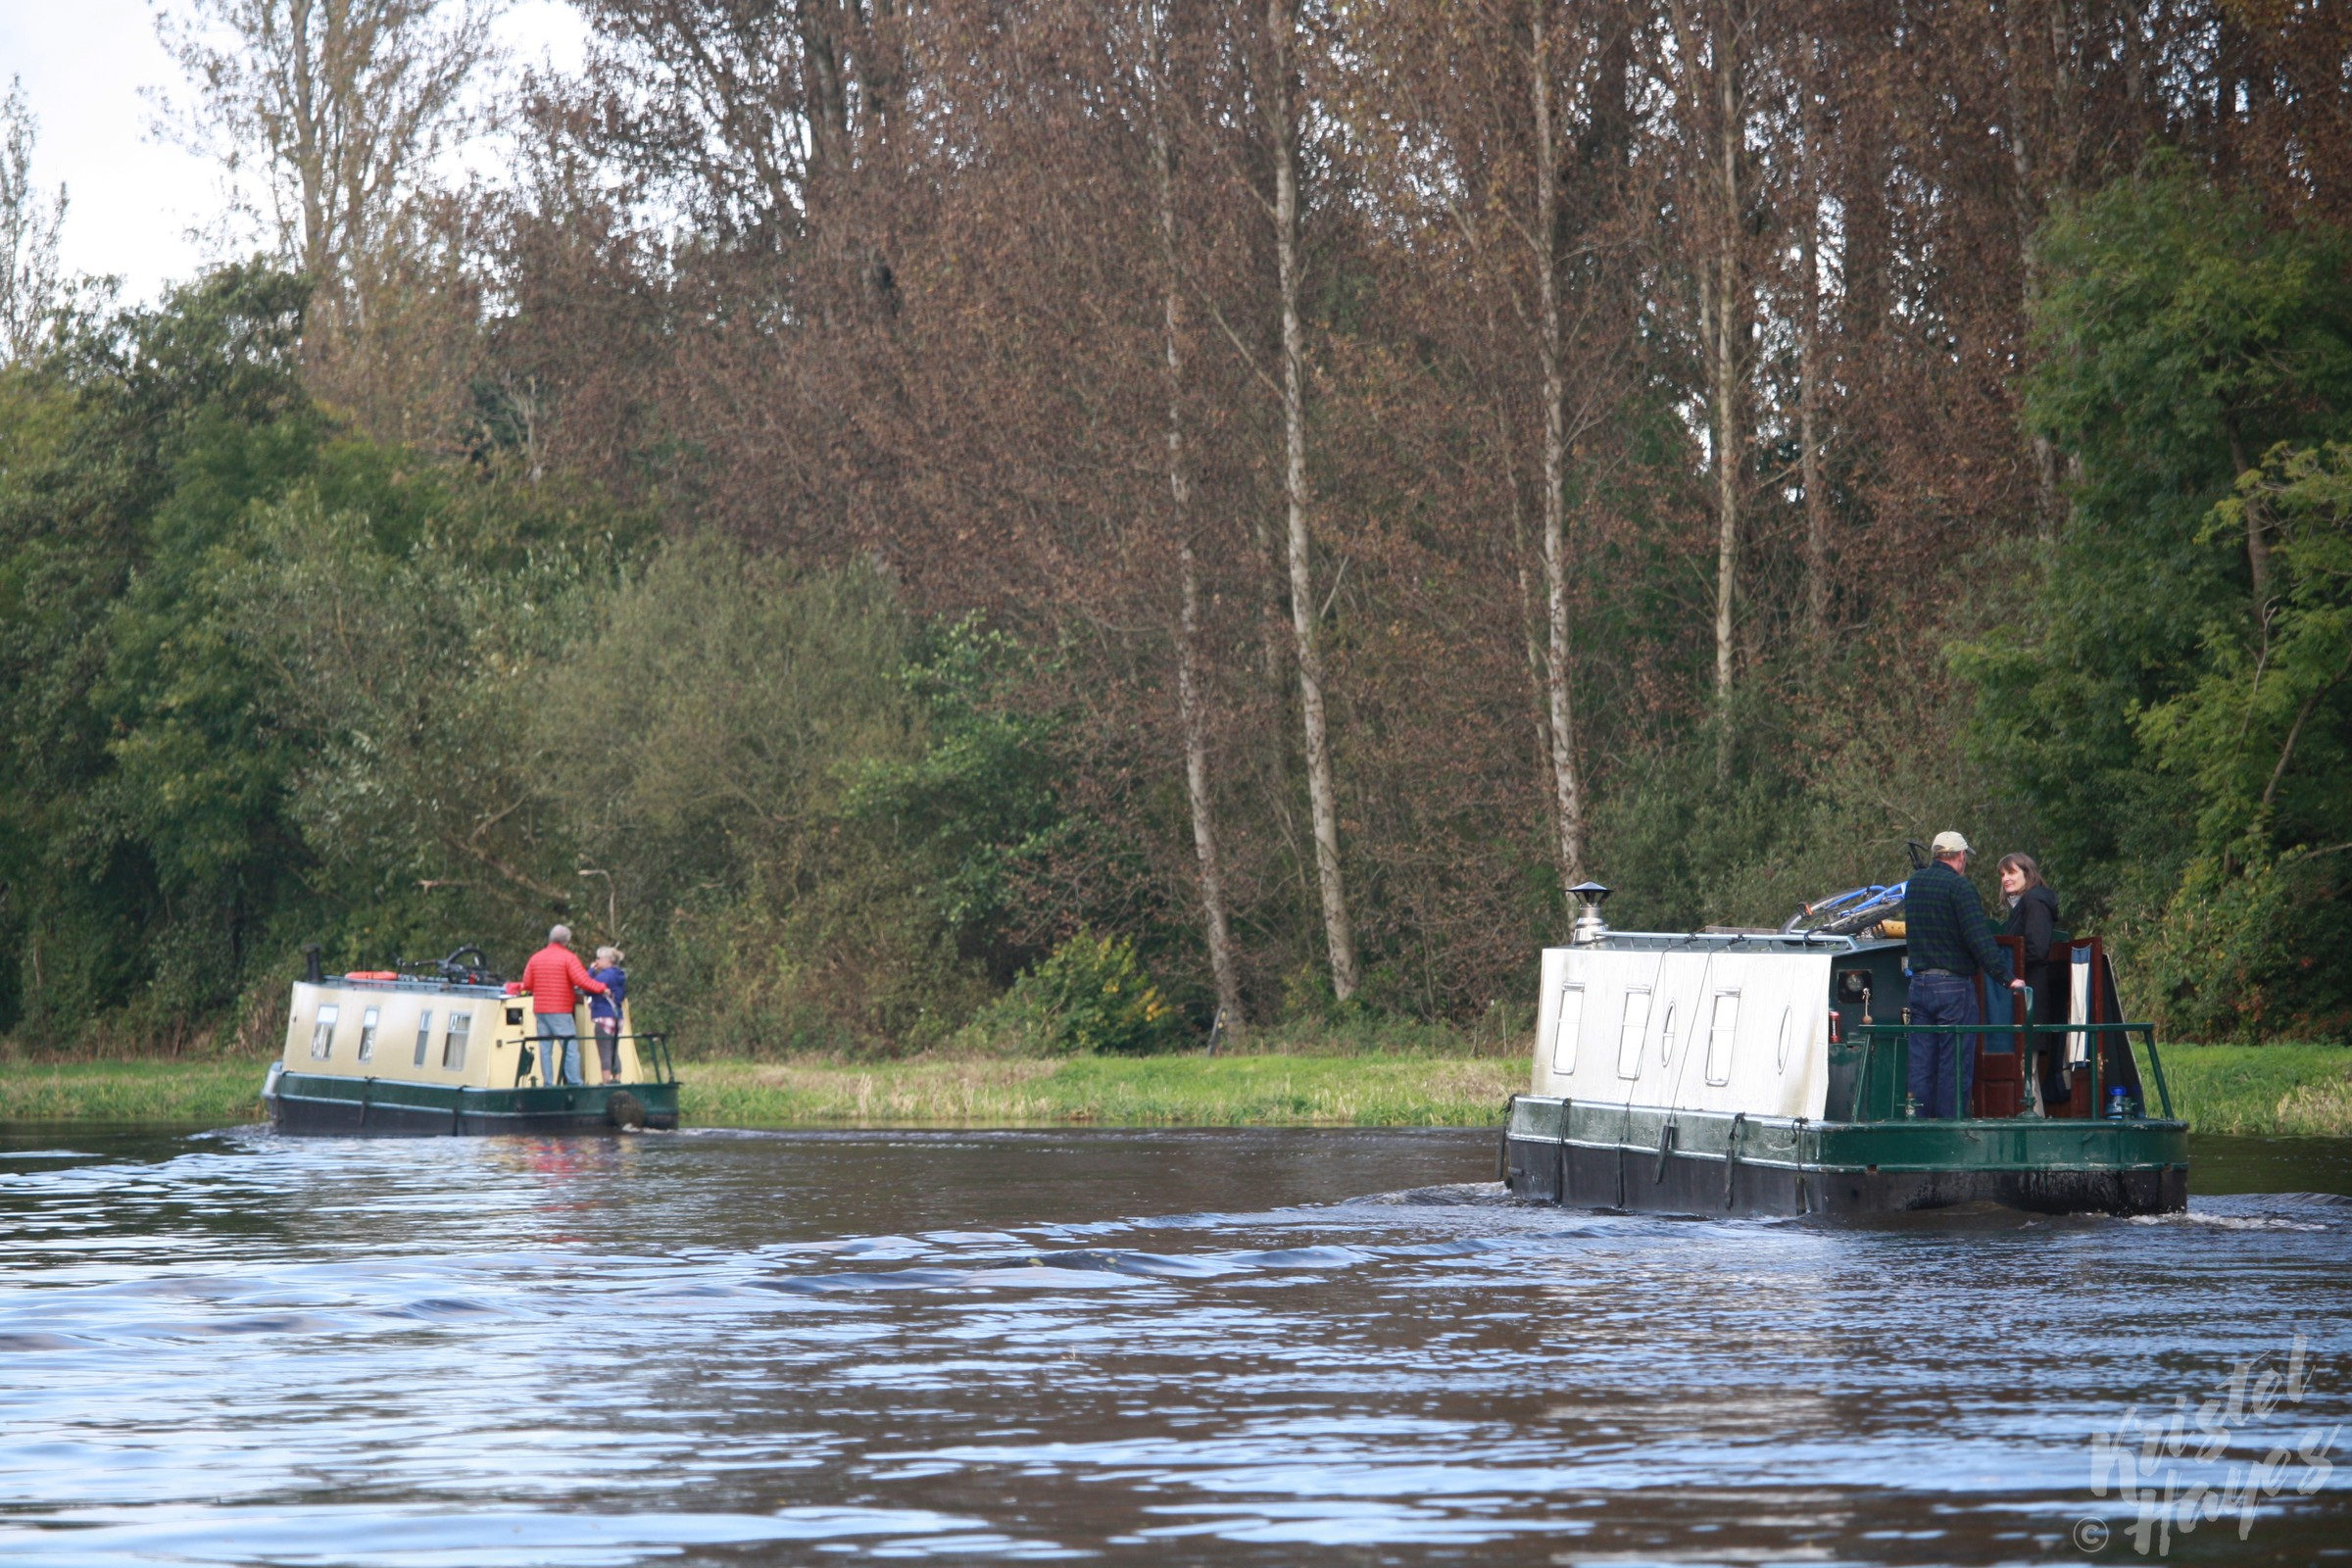 River Barrow Narrow Boats, Ireland